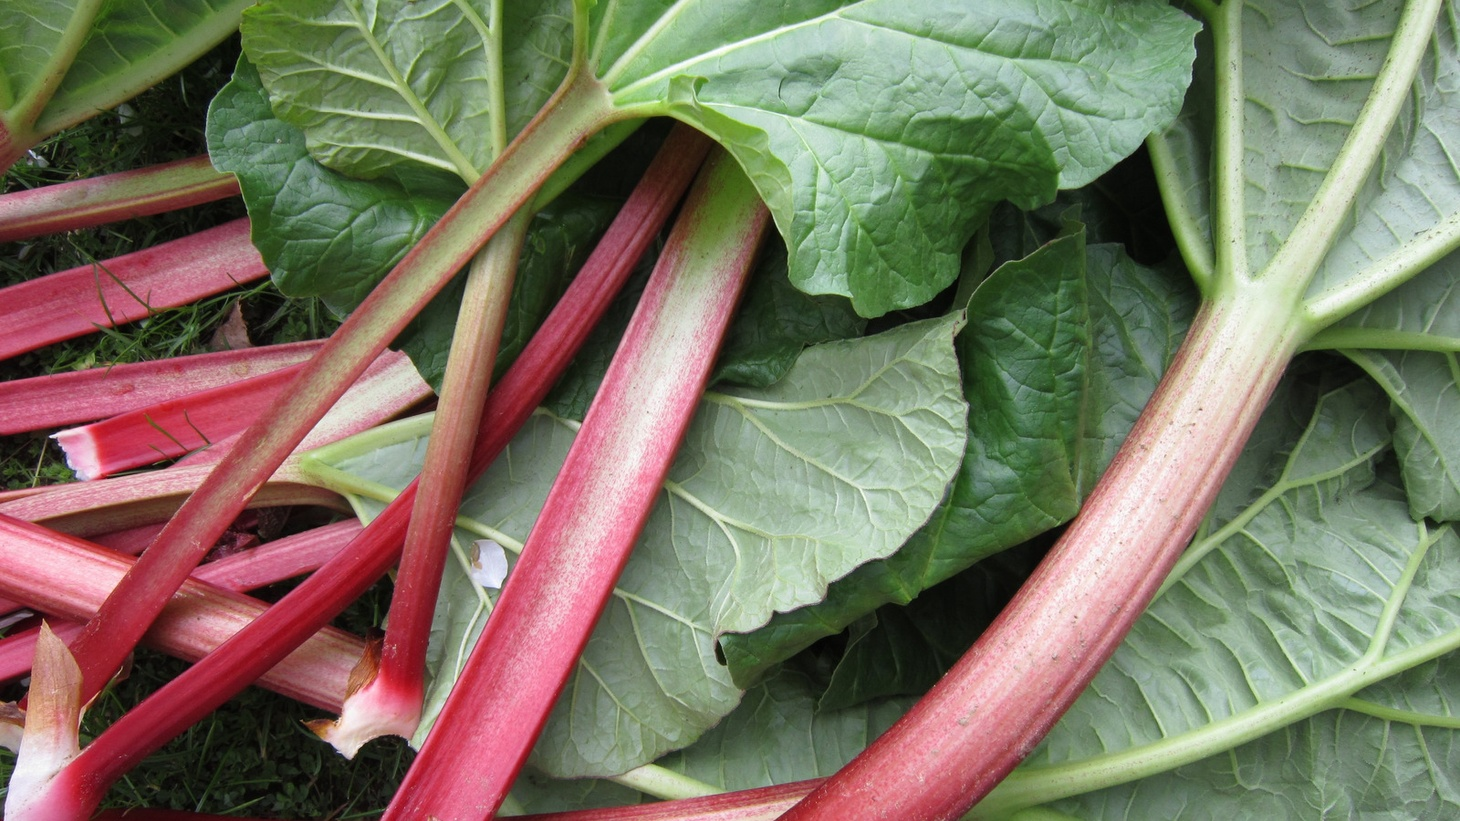 Tinky Weisblat recommends nontraditional uses for rhubarb including as a pizza topping.